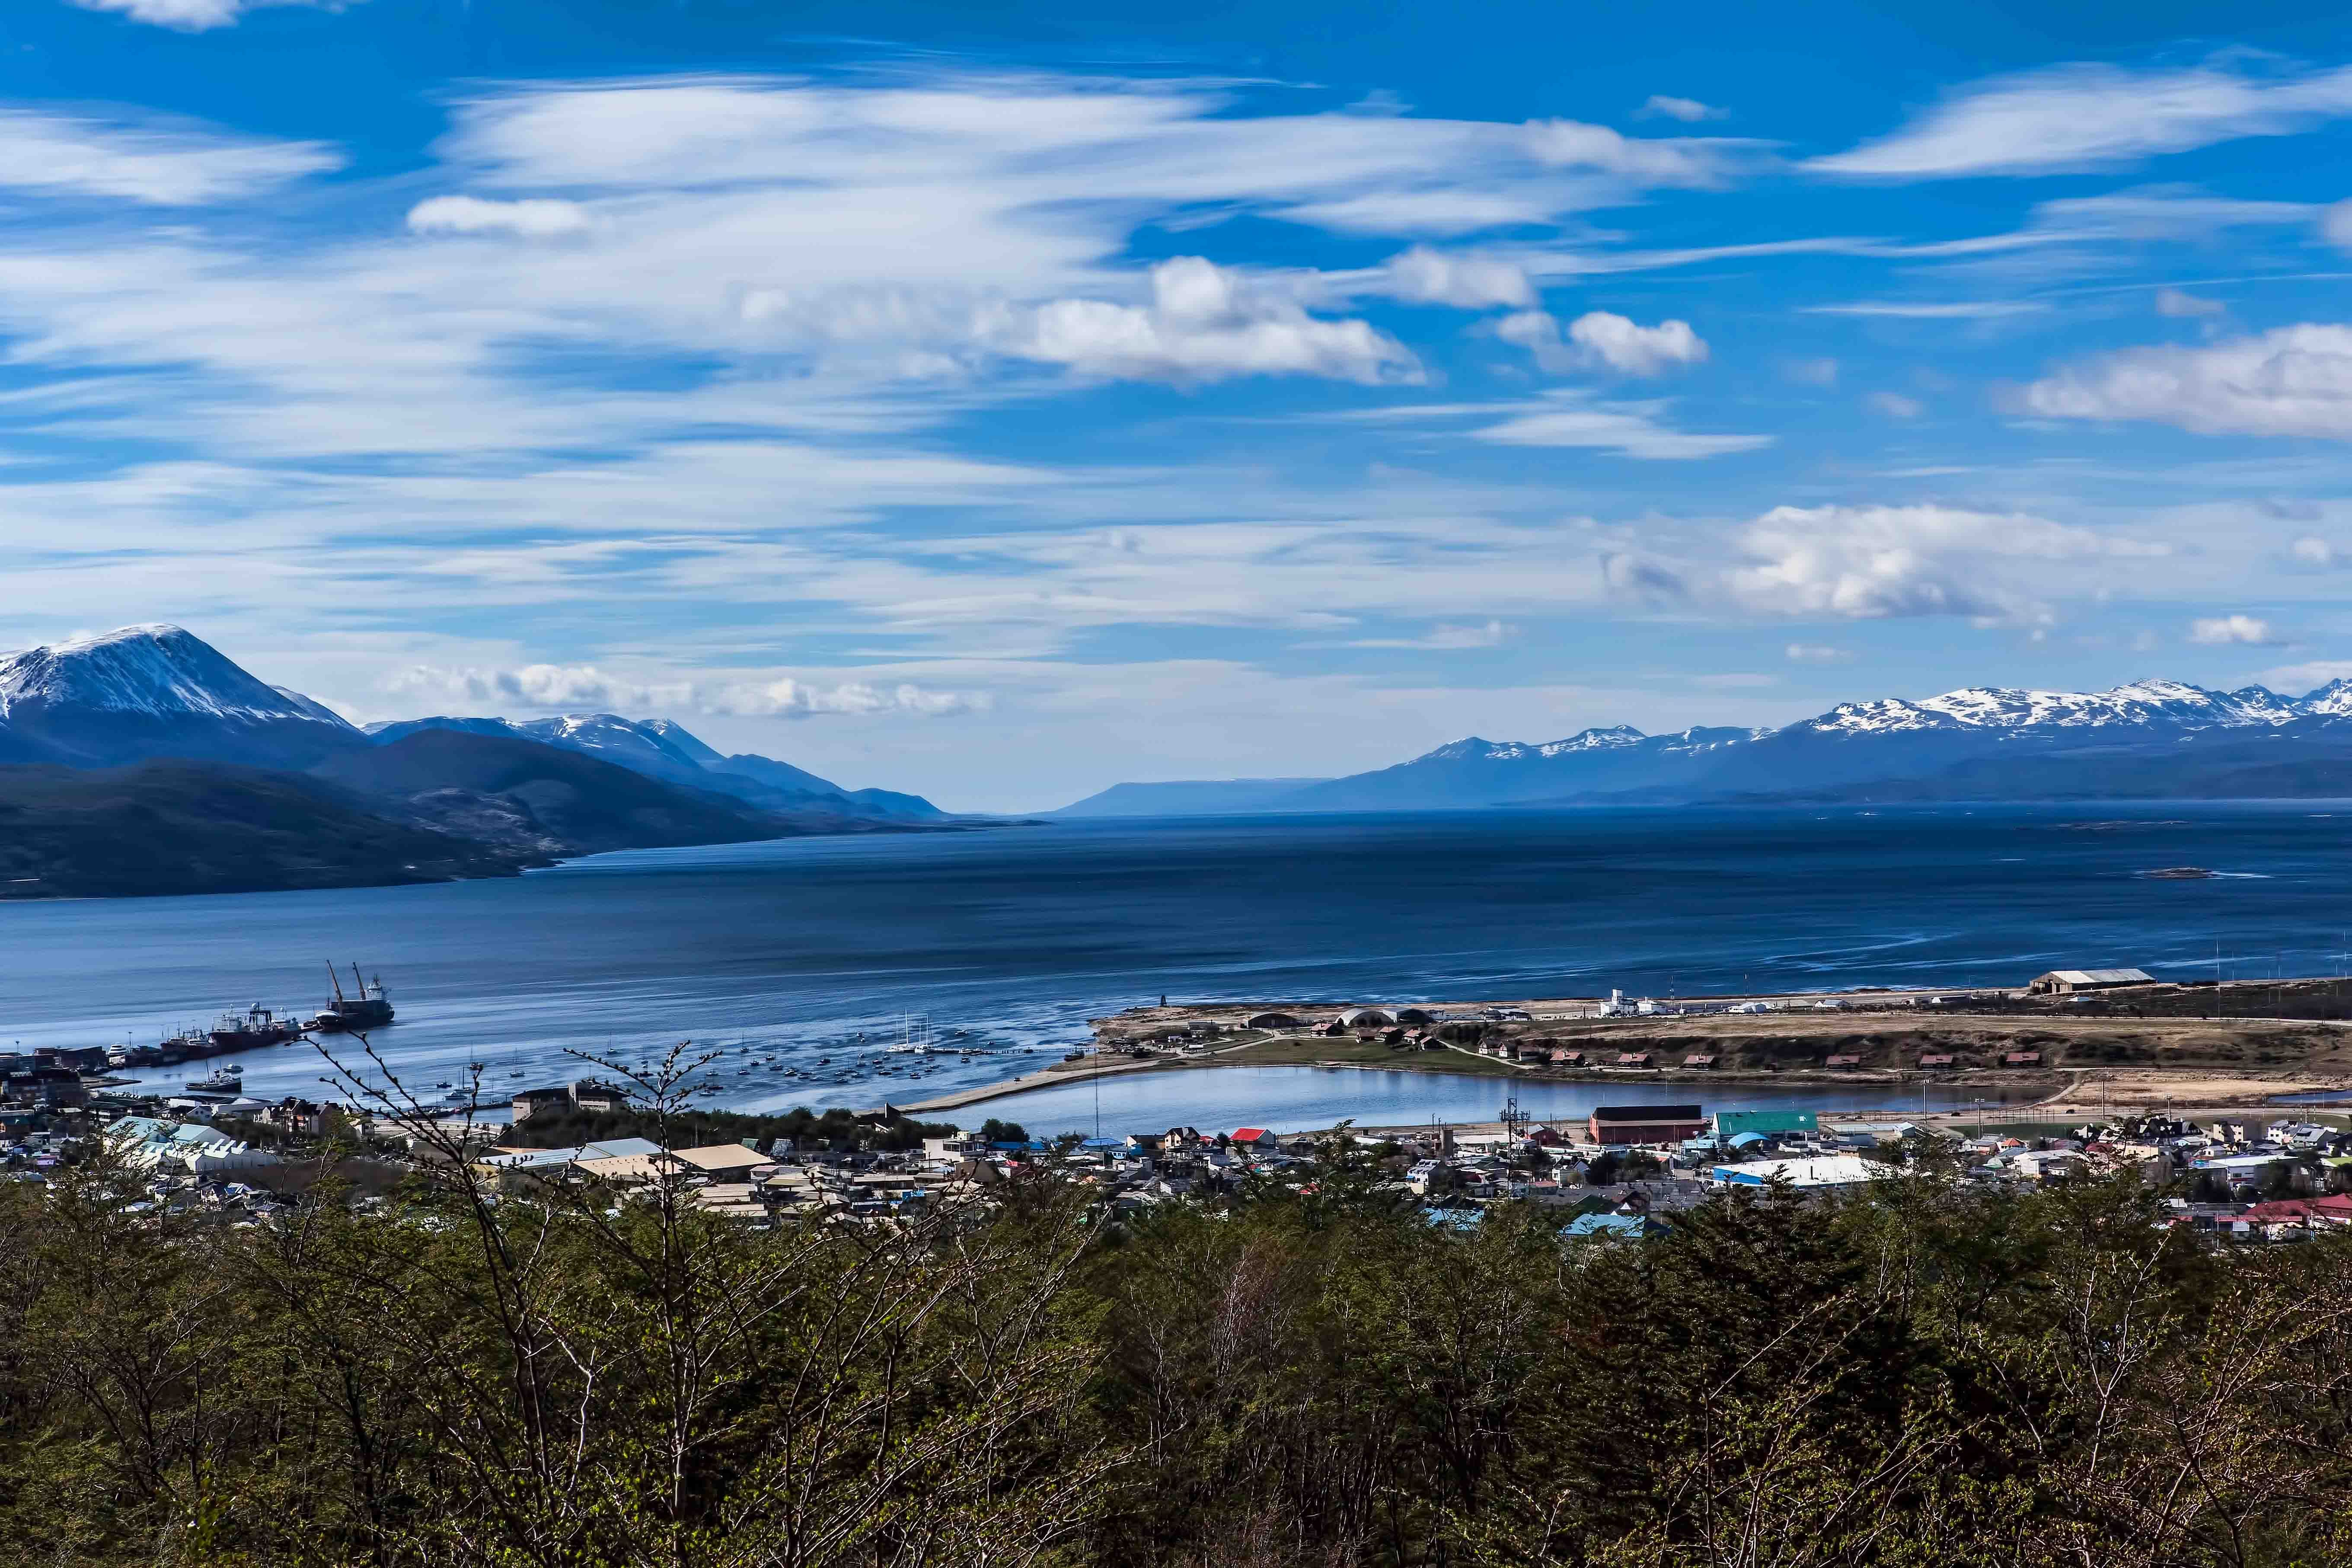 Amazing View Of Beagle Channel From Ushuaia Tierra Del Fuego